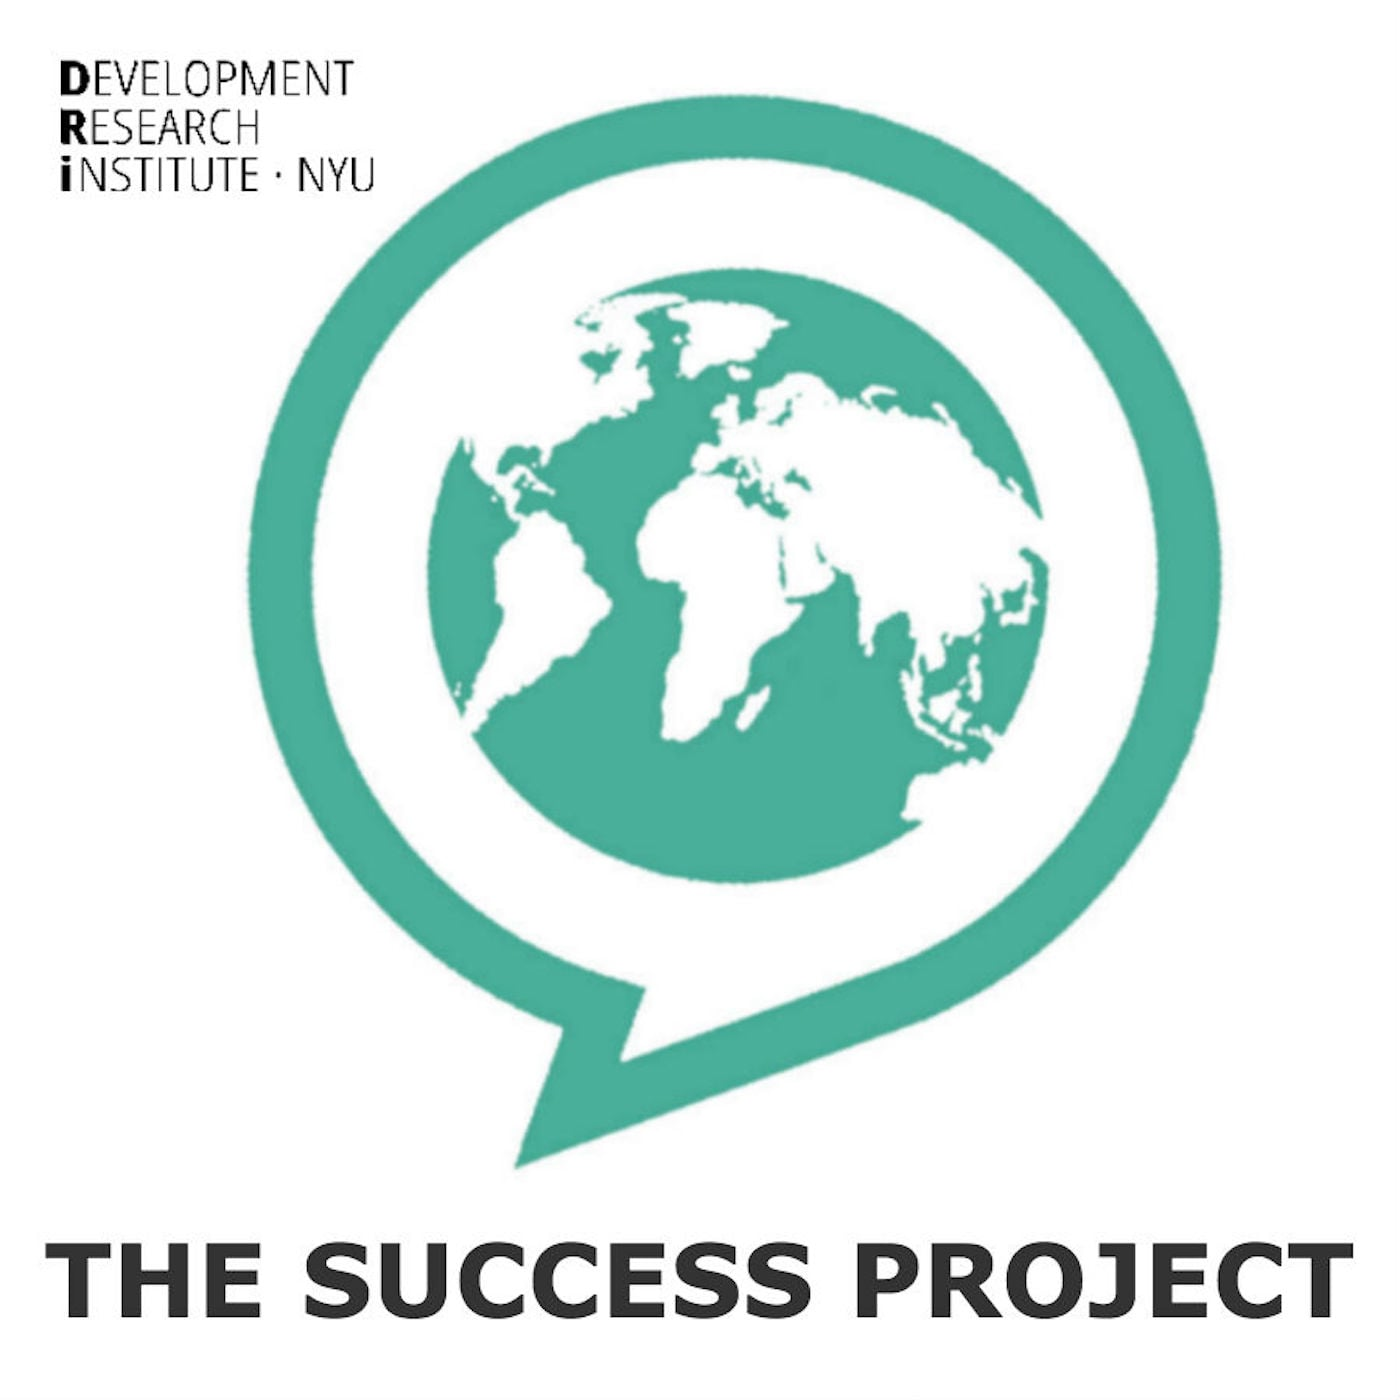 The Success Project - Development Research Institute